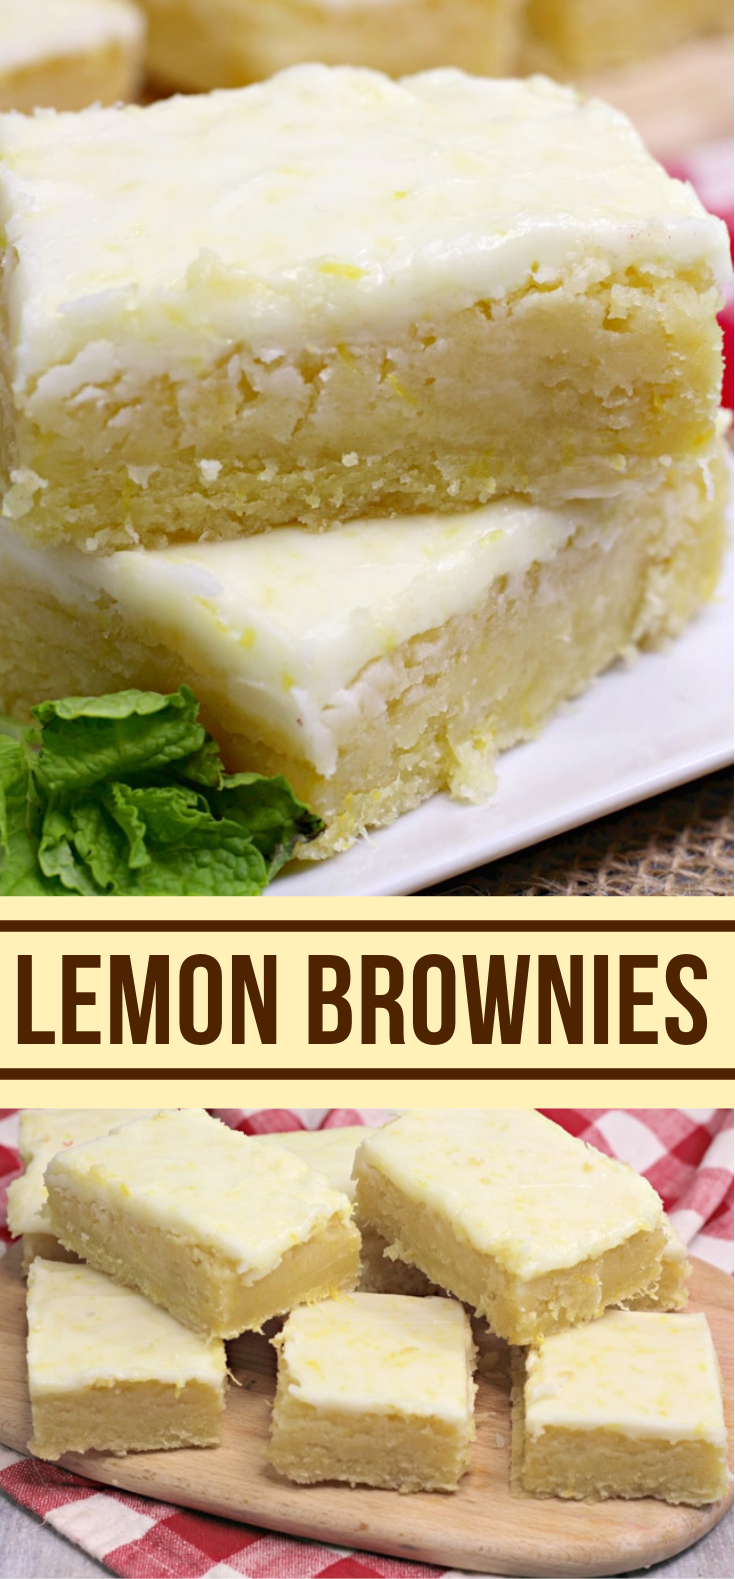 LEMON BROWNIES #favoritedessert #cakes